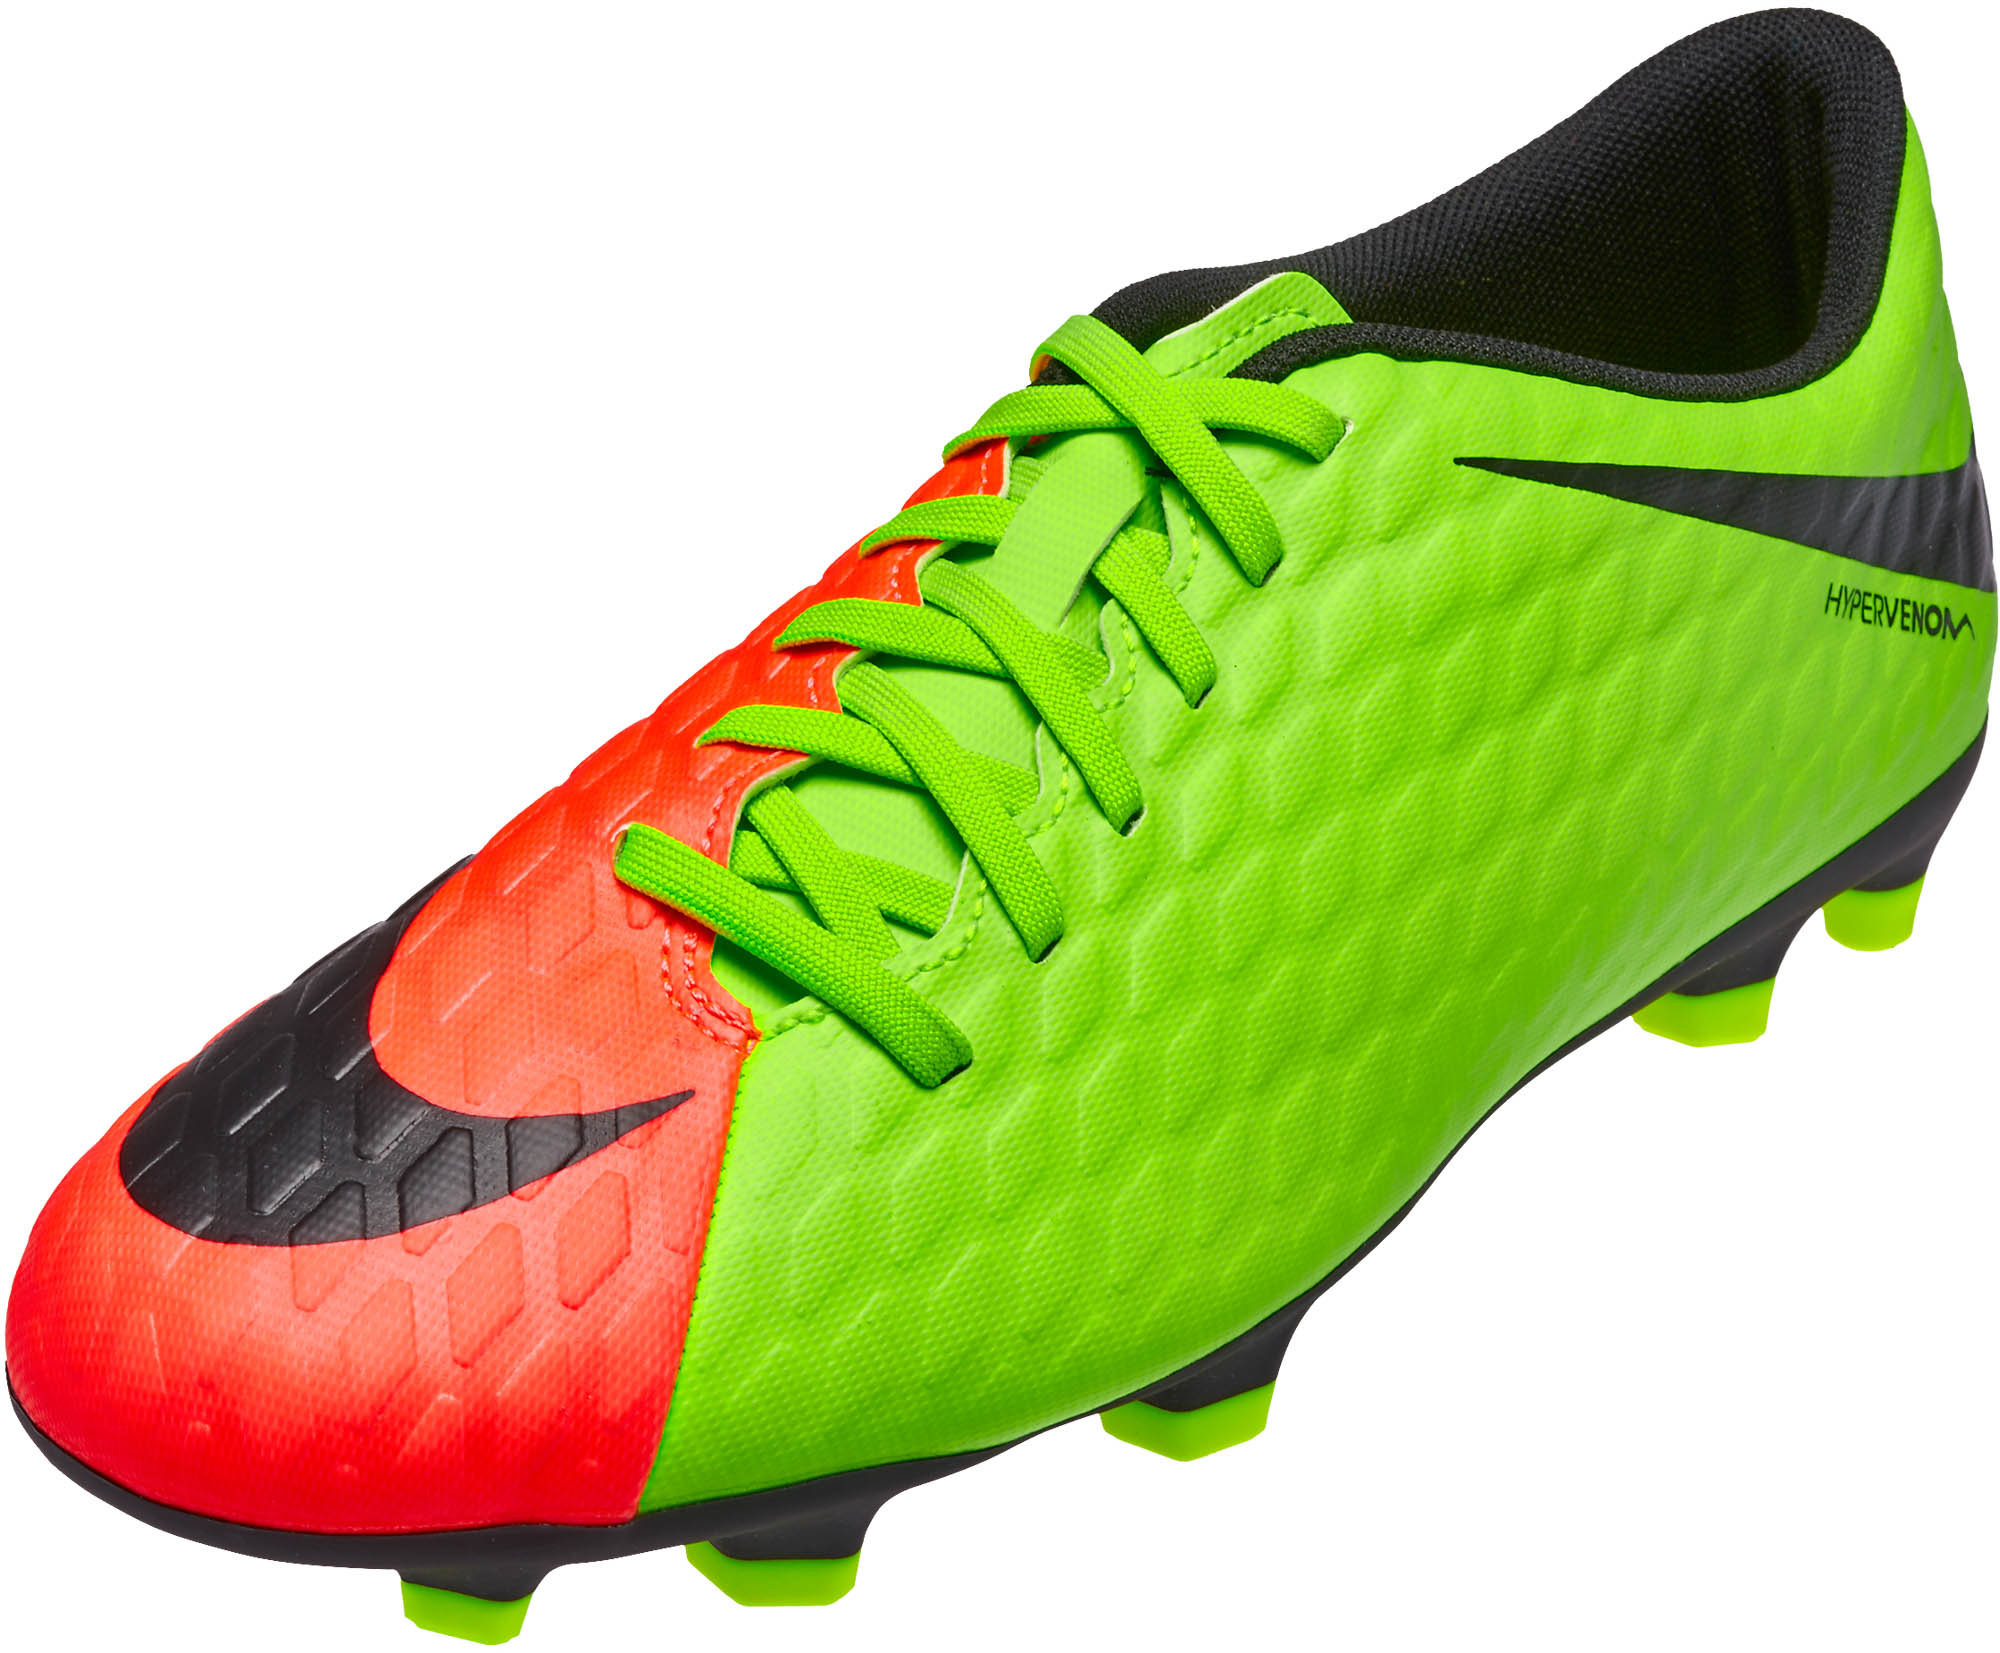 save off 549d1 bd526 Nike Hypervenom Phade III FG – Electric Green/Hyper Orange